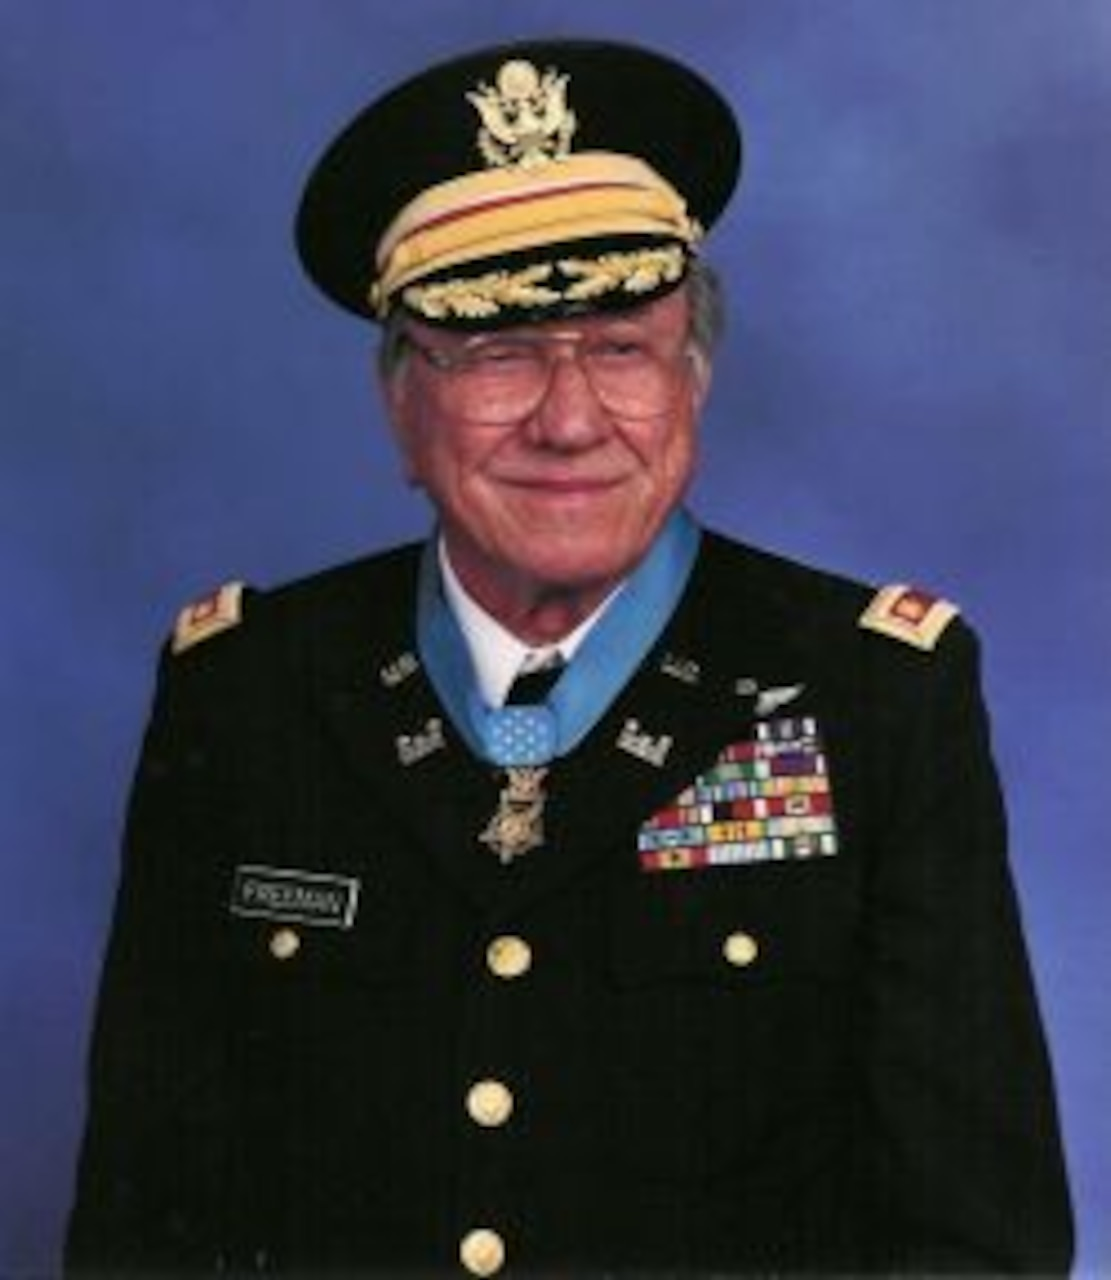 An official photo of a soldier in formal dress wearing a Medal of Honor.